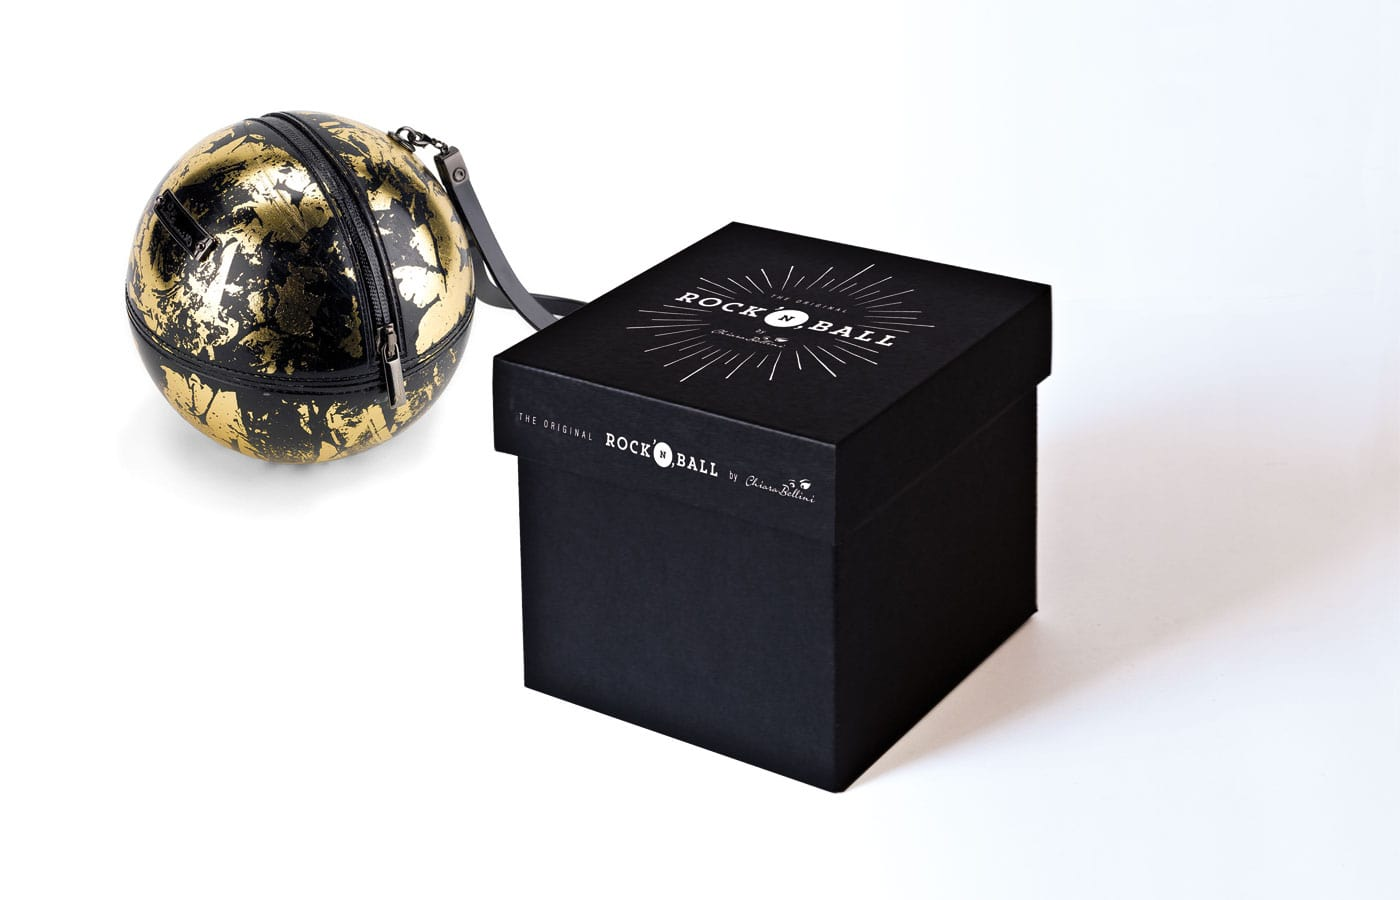 Badini Creative Studio - packaging - Chiara Bellini - rock'n'ball